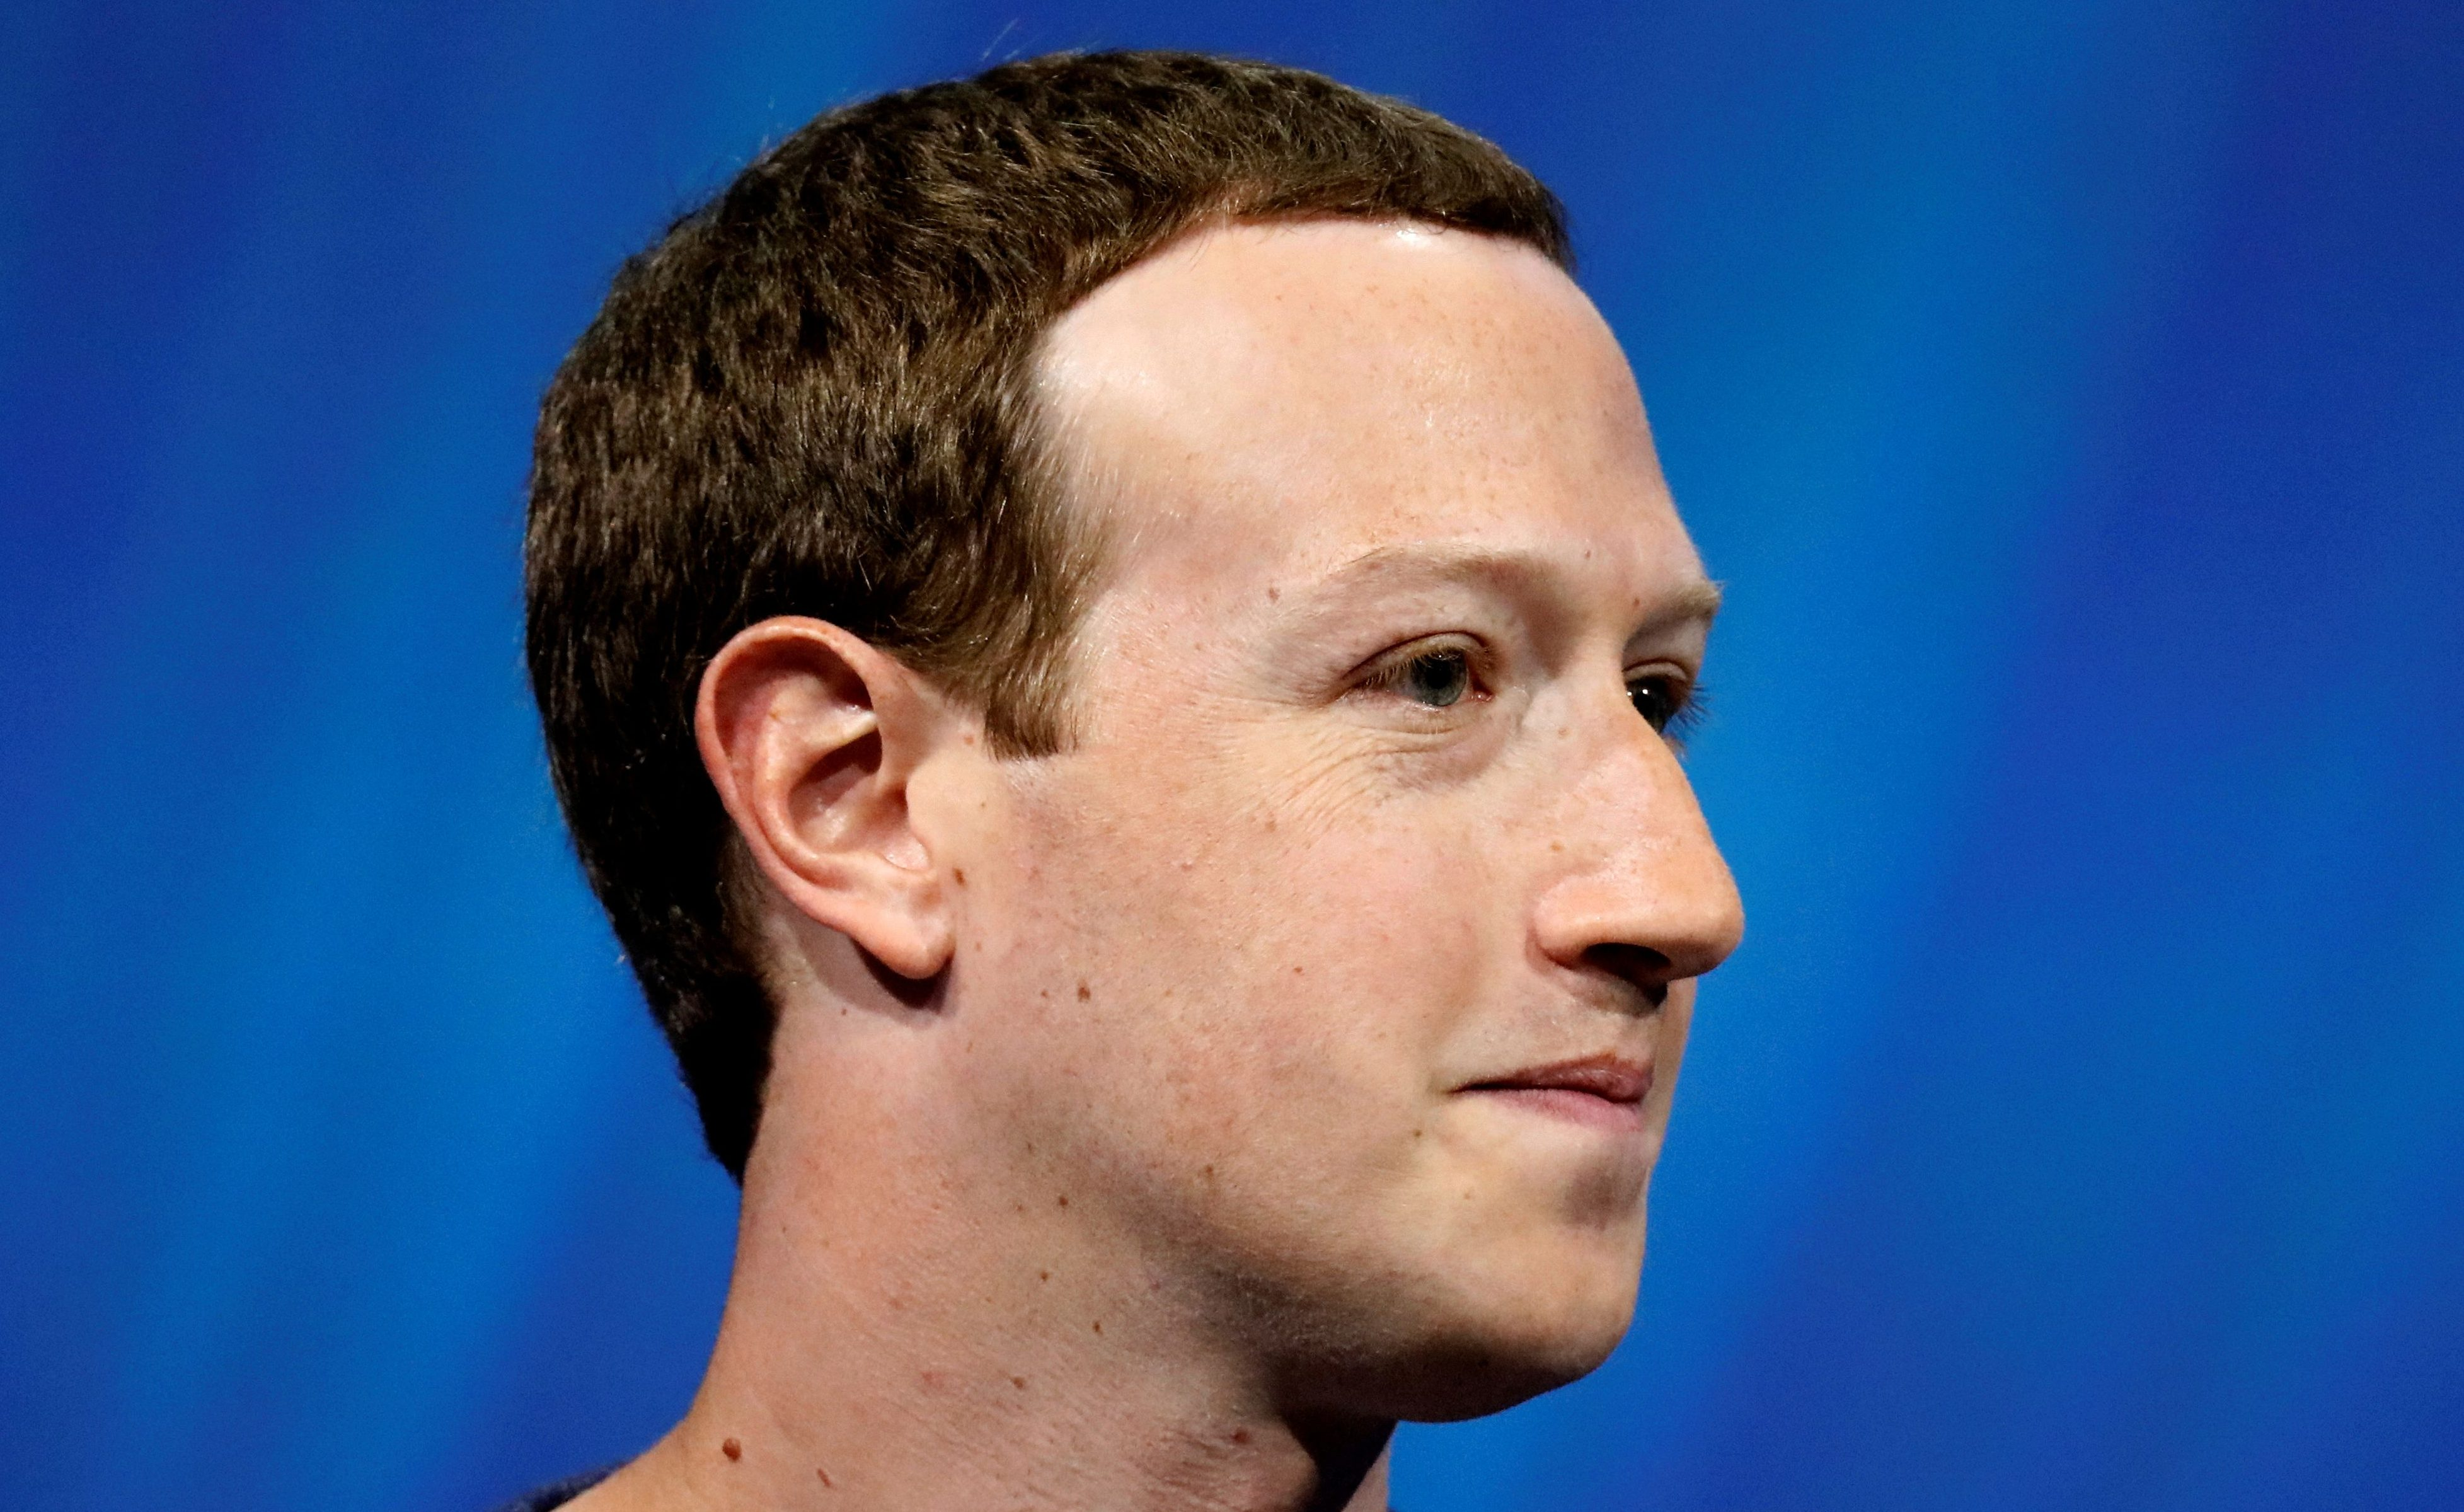 FILE PHOTO: Facebook's founder and CEO Mark Zuckerberg speaks at the Viva Tech start-up and technology summit in Paris, France, May 24, 2018.